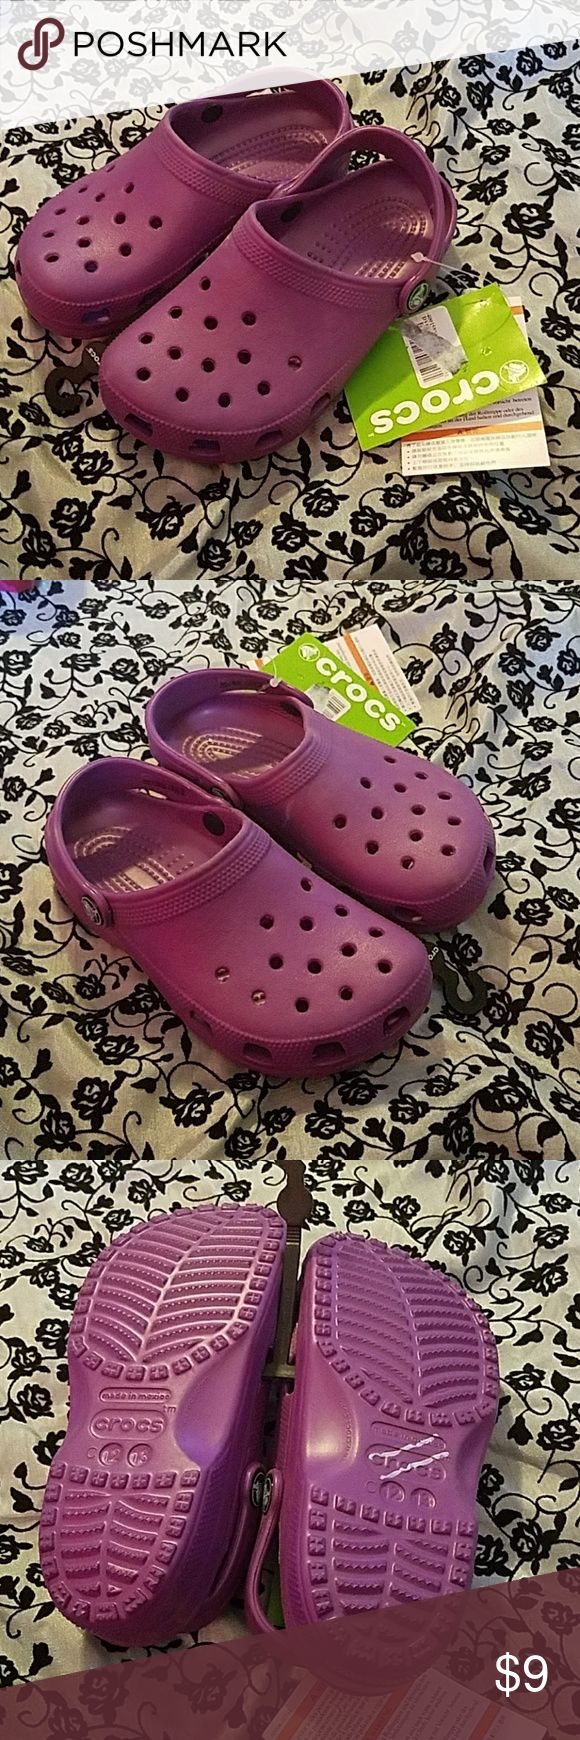 Child Purple Crocs 12/13 Please check all pictures carefully.  Sold as is CROCS Shoes Sandals & Flip Flops